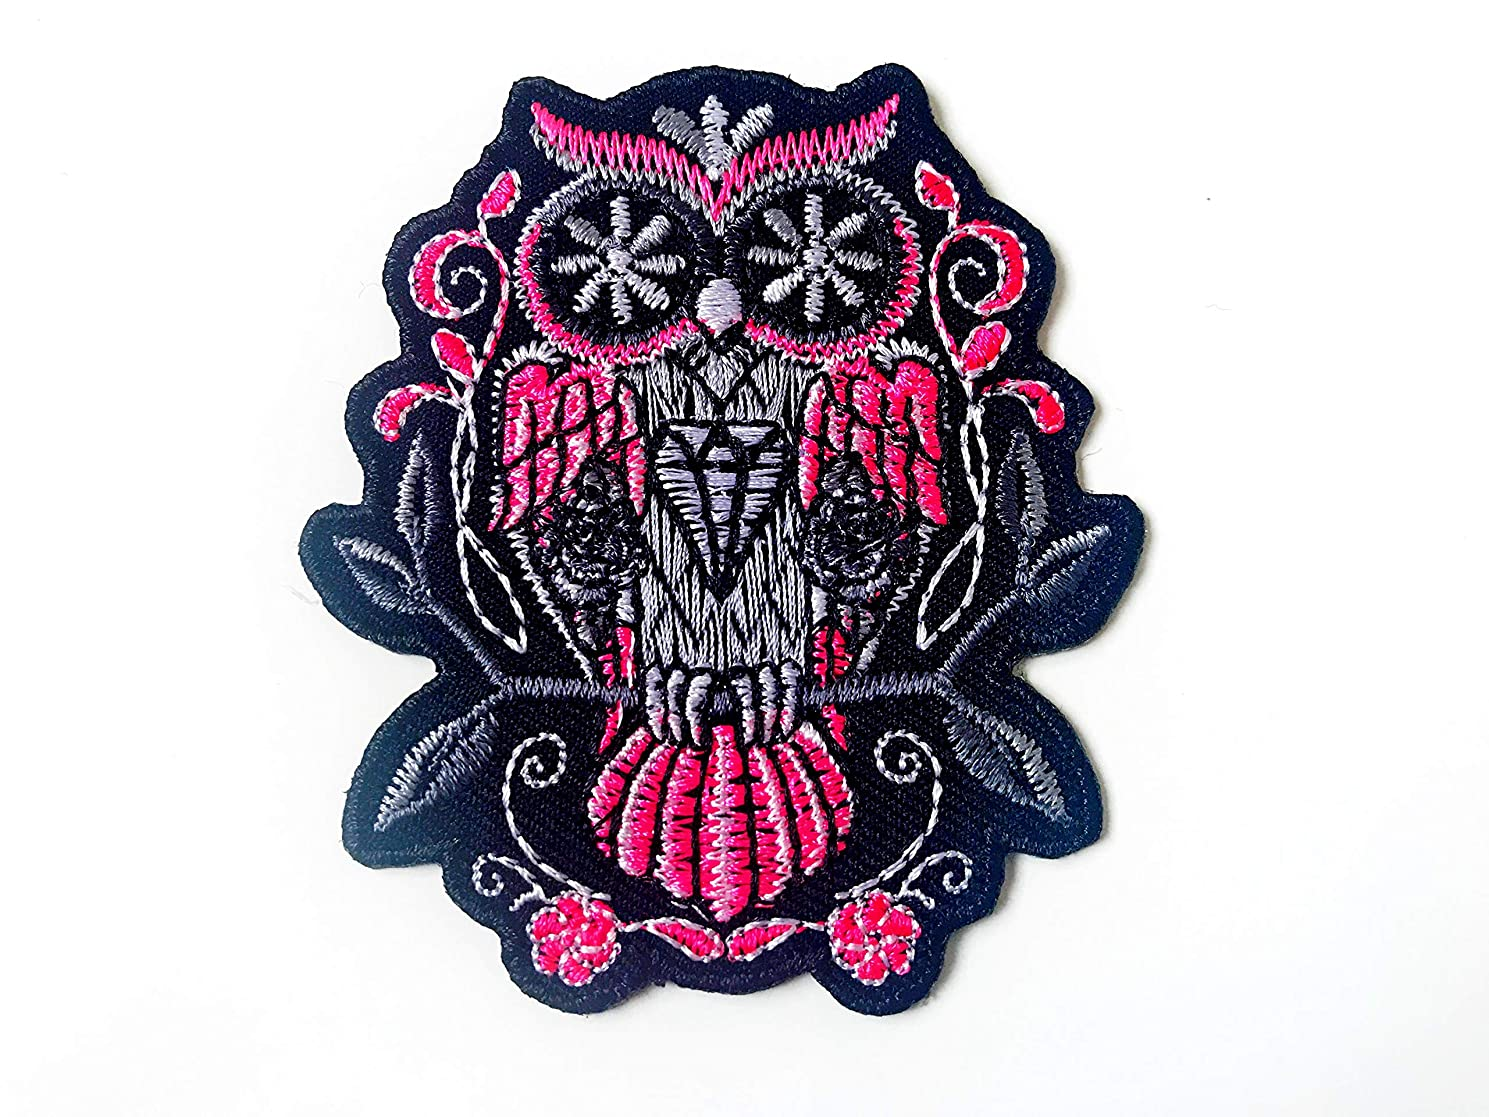 Tyga_Thai Brand Owl Tattoo Style Animal Tattoo Biker Rider Patch Embroidered Iron on Patches for Kids Backpacks Jeans Jackets Clothing etc. Patches (Iron-OWL-Patch)